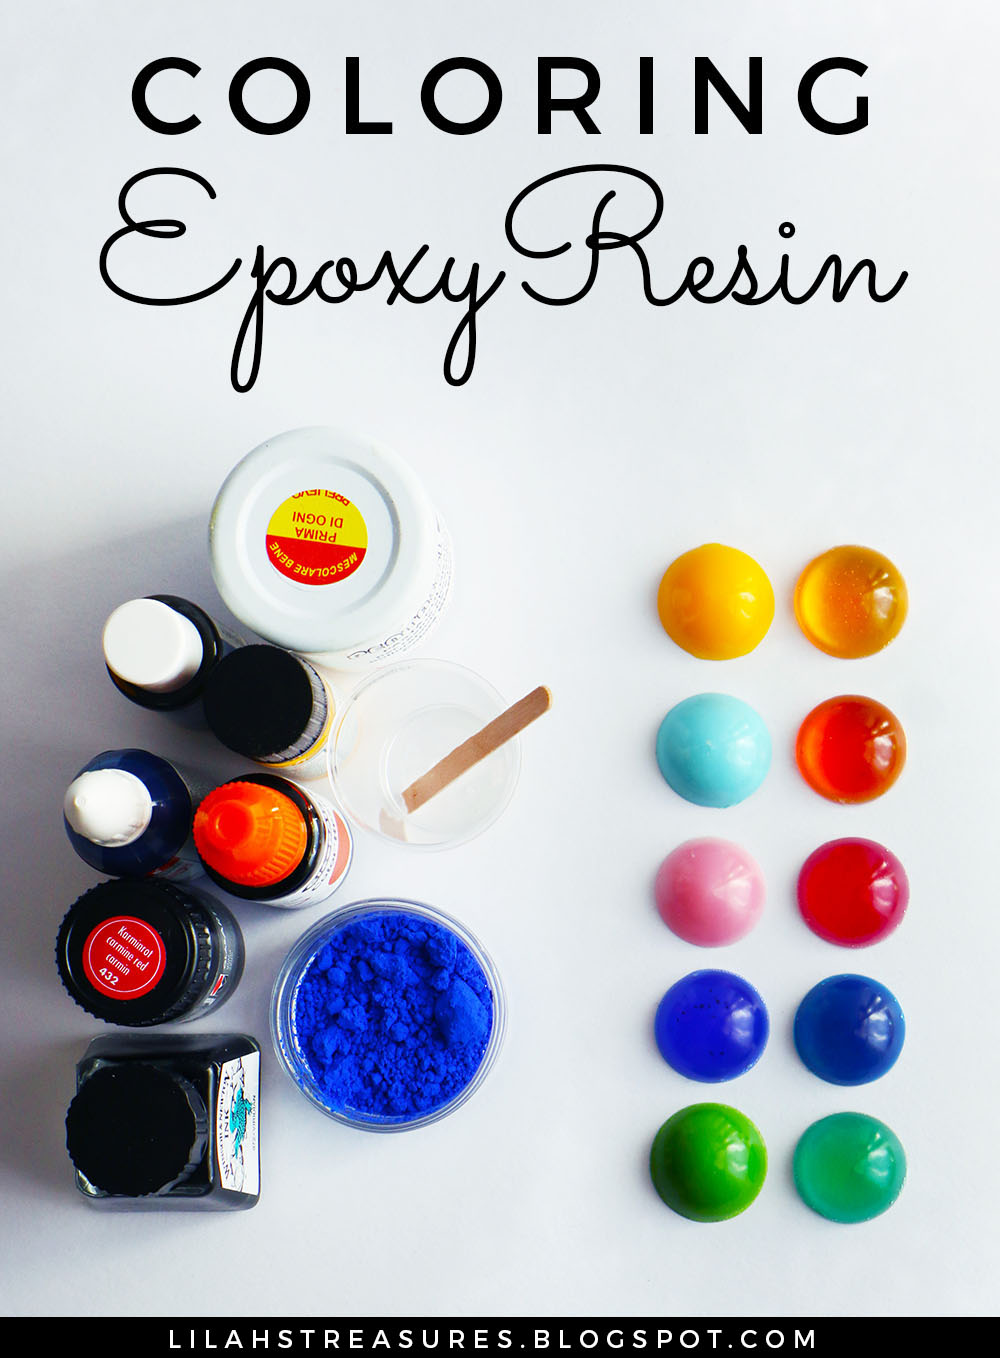 Coloring epoxy resin - Lilah\' s Treasures